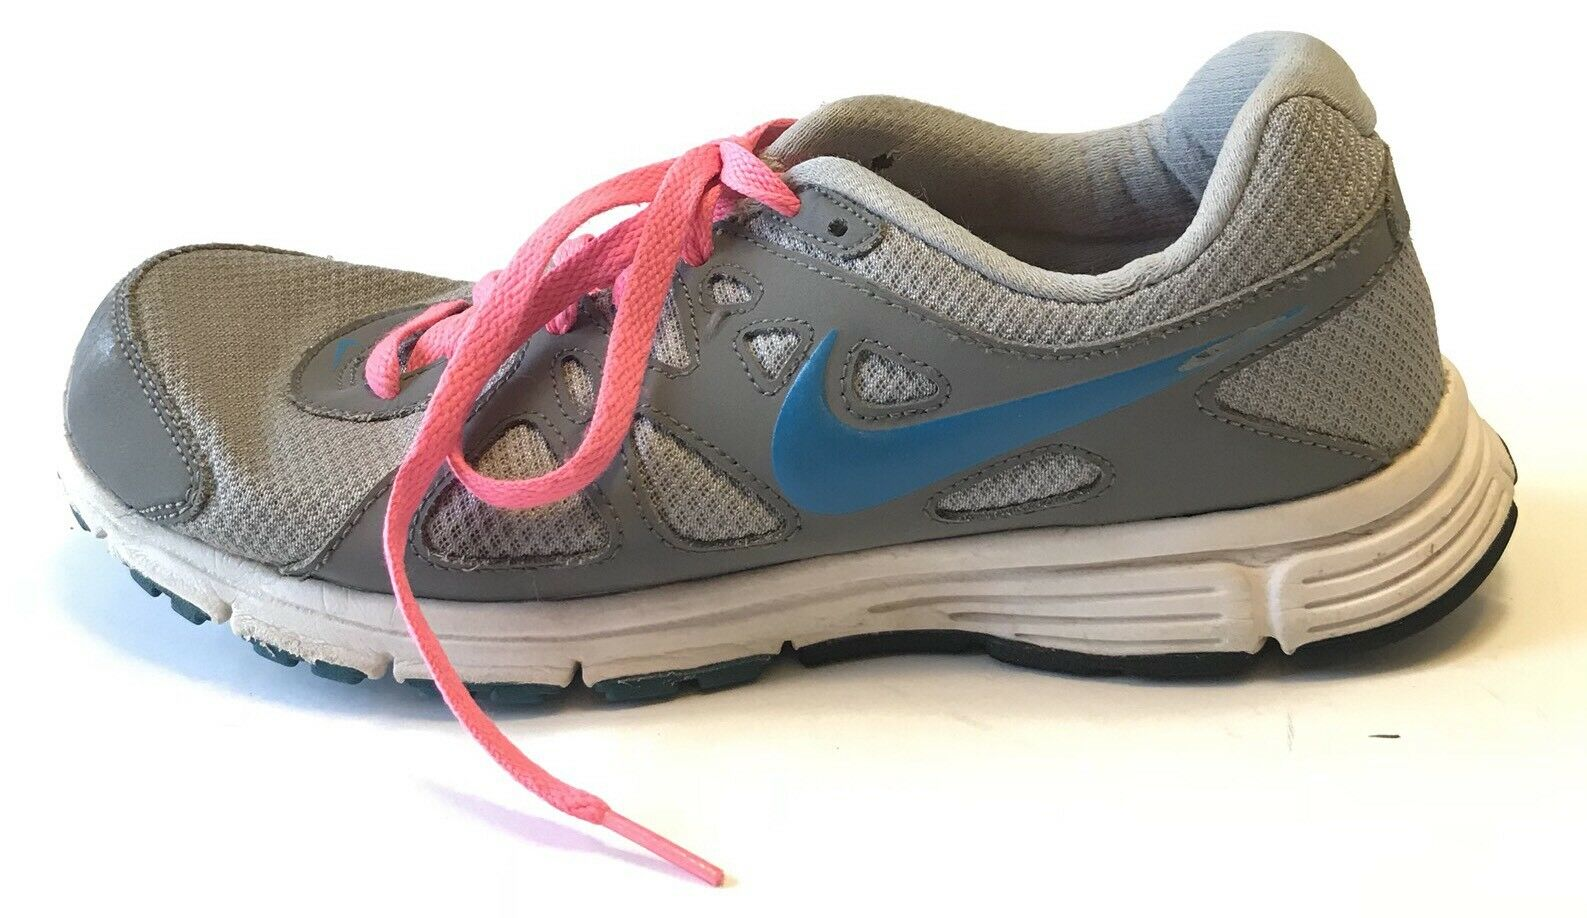 nike  révolution 2 chaussures chaussures taille 9 Gris  nike rose 25654a